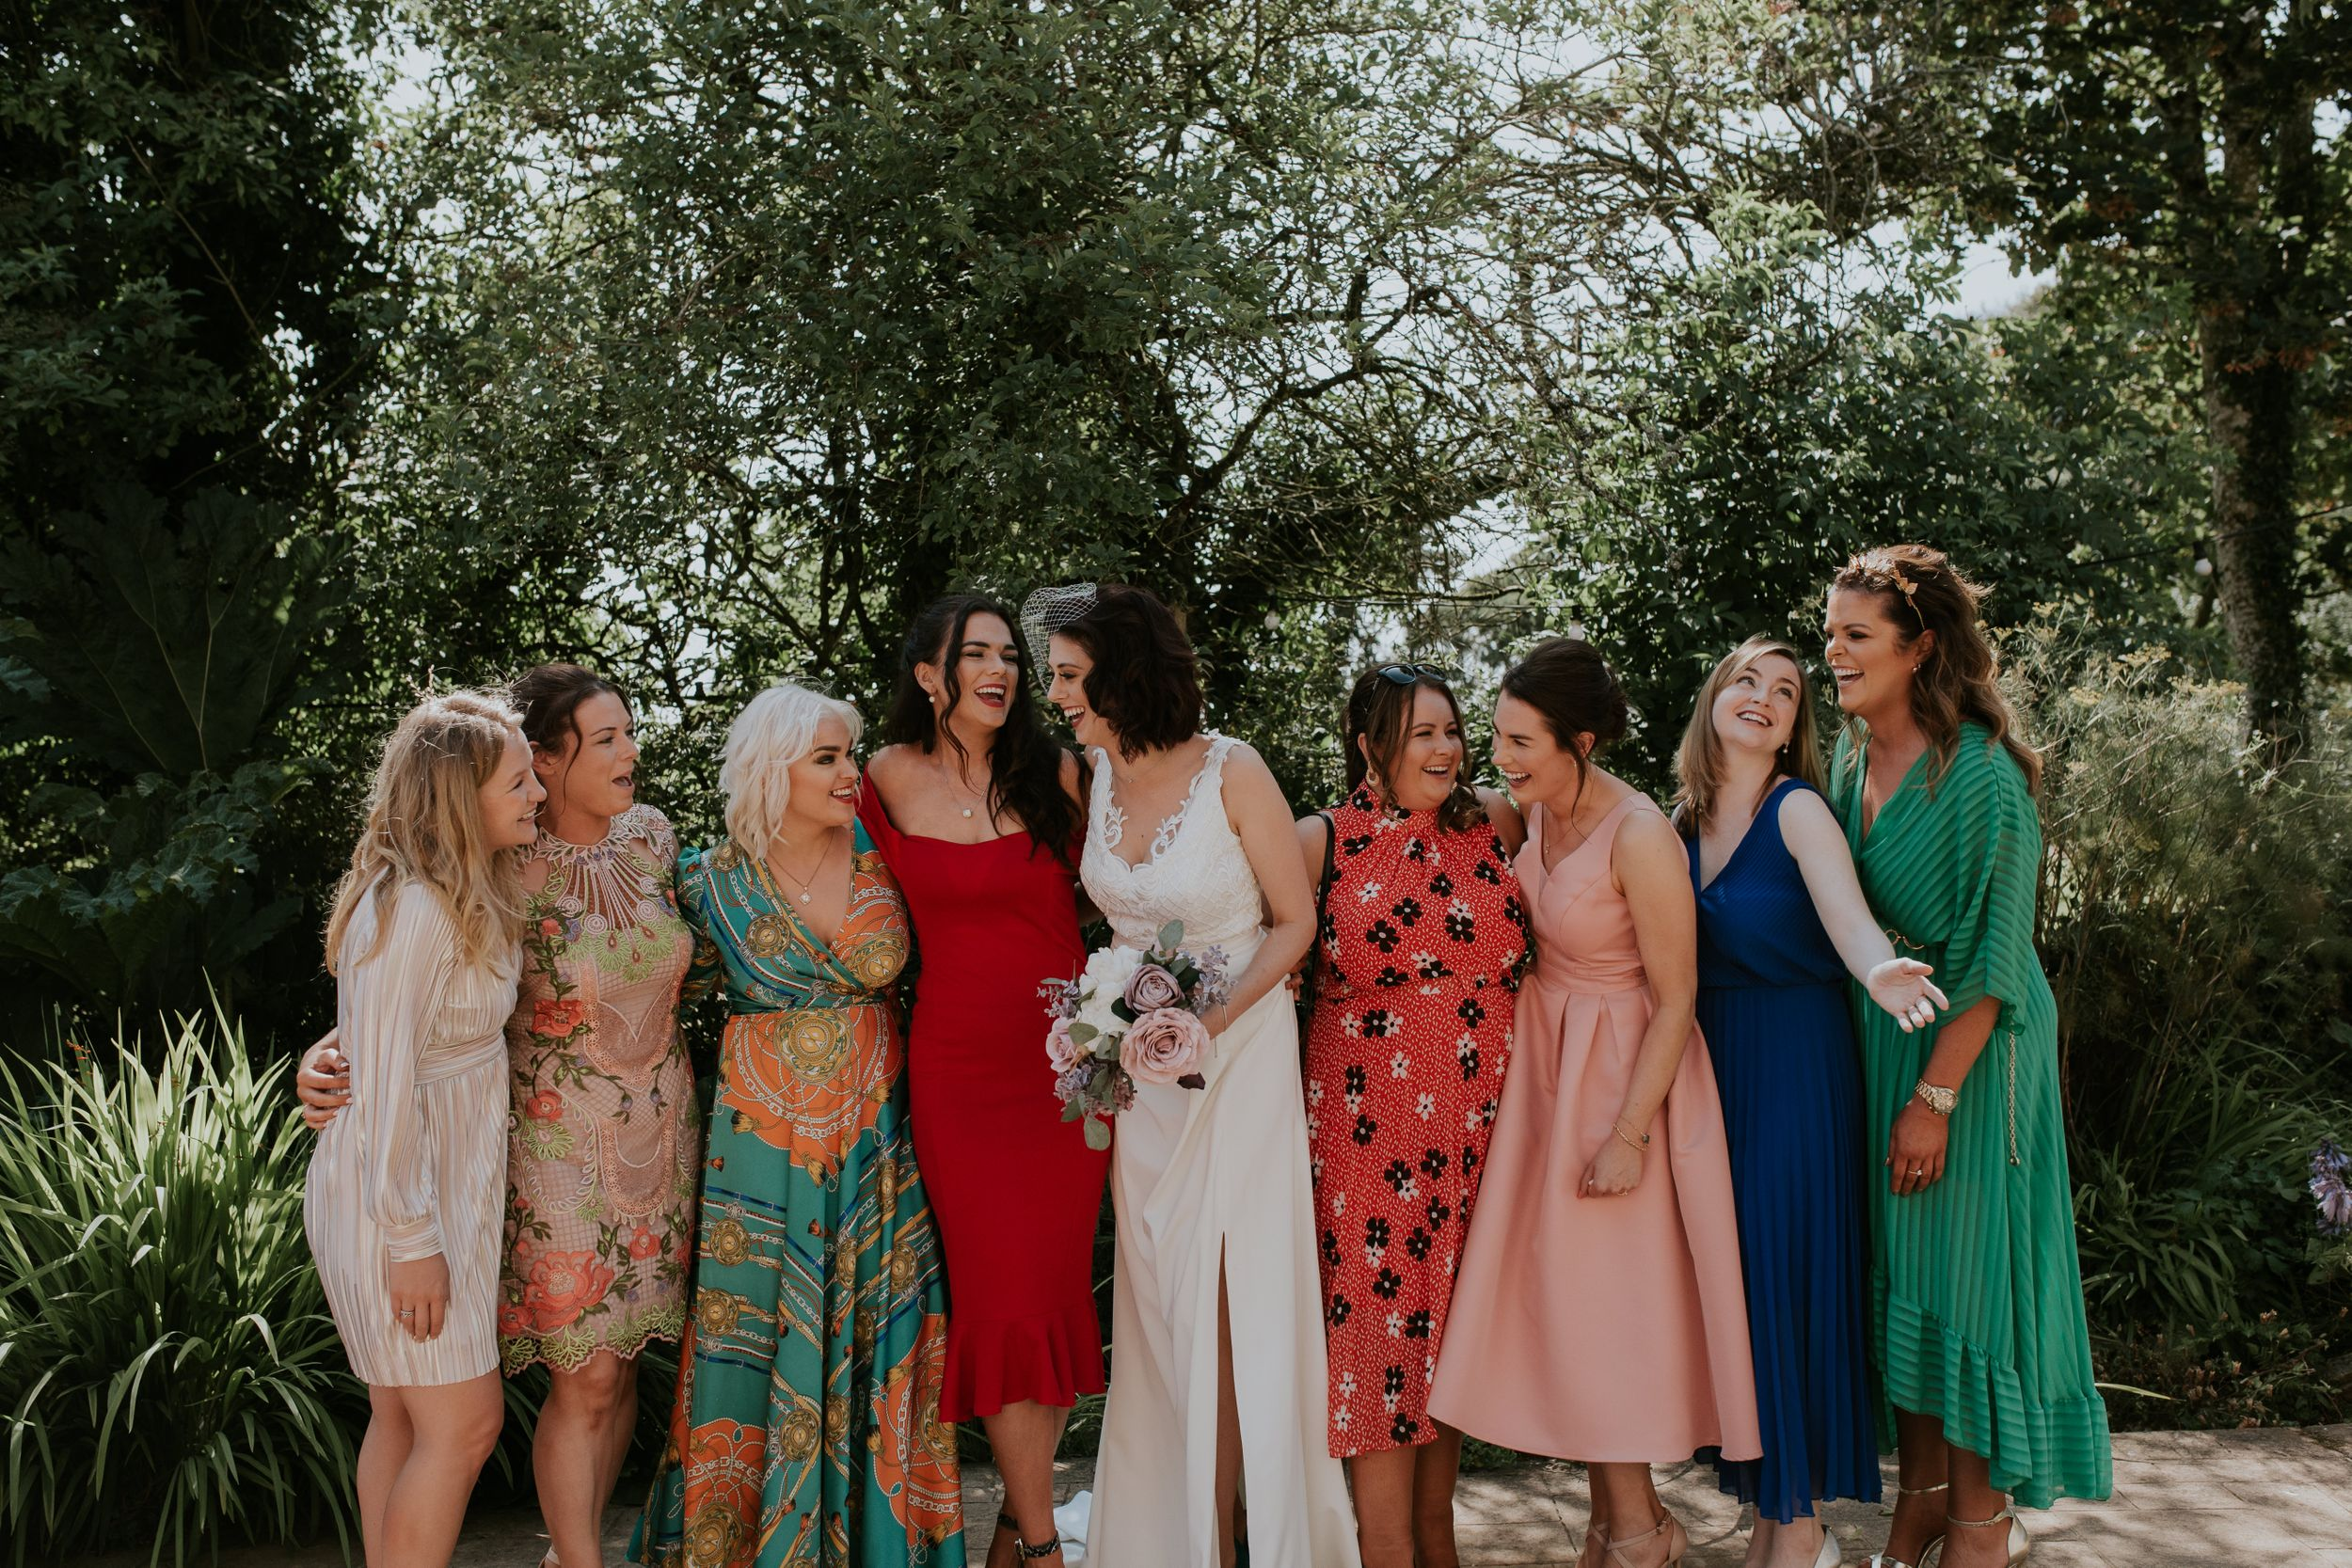 Relaxed wedding guest photos